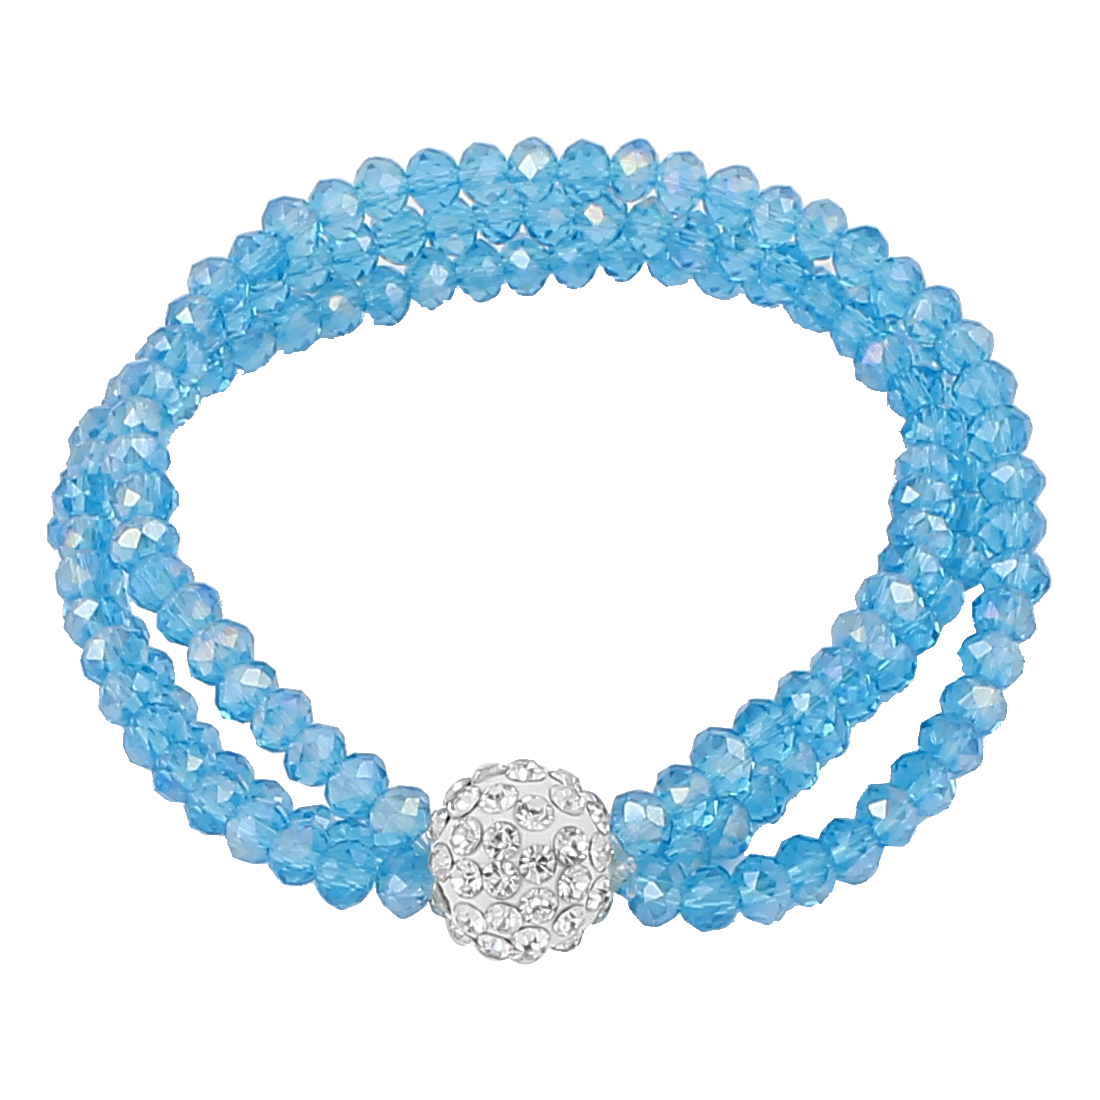 Lady Jewelry 12mm Faux Crystal Ball Beaded Stretch Bangle Bracelet Teal